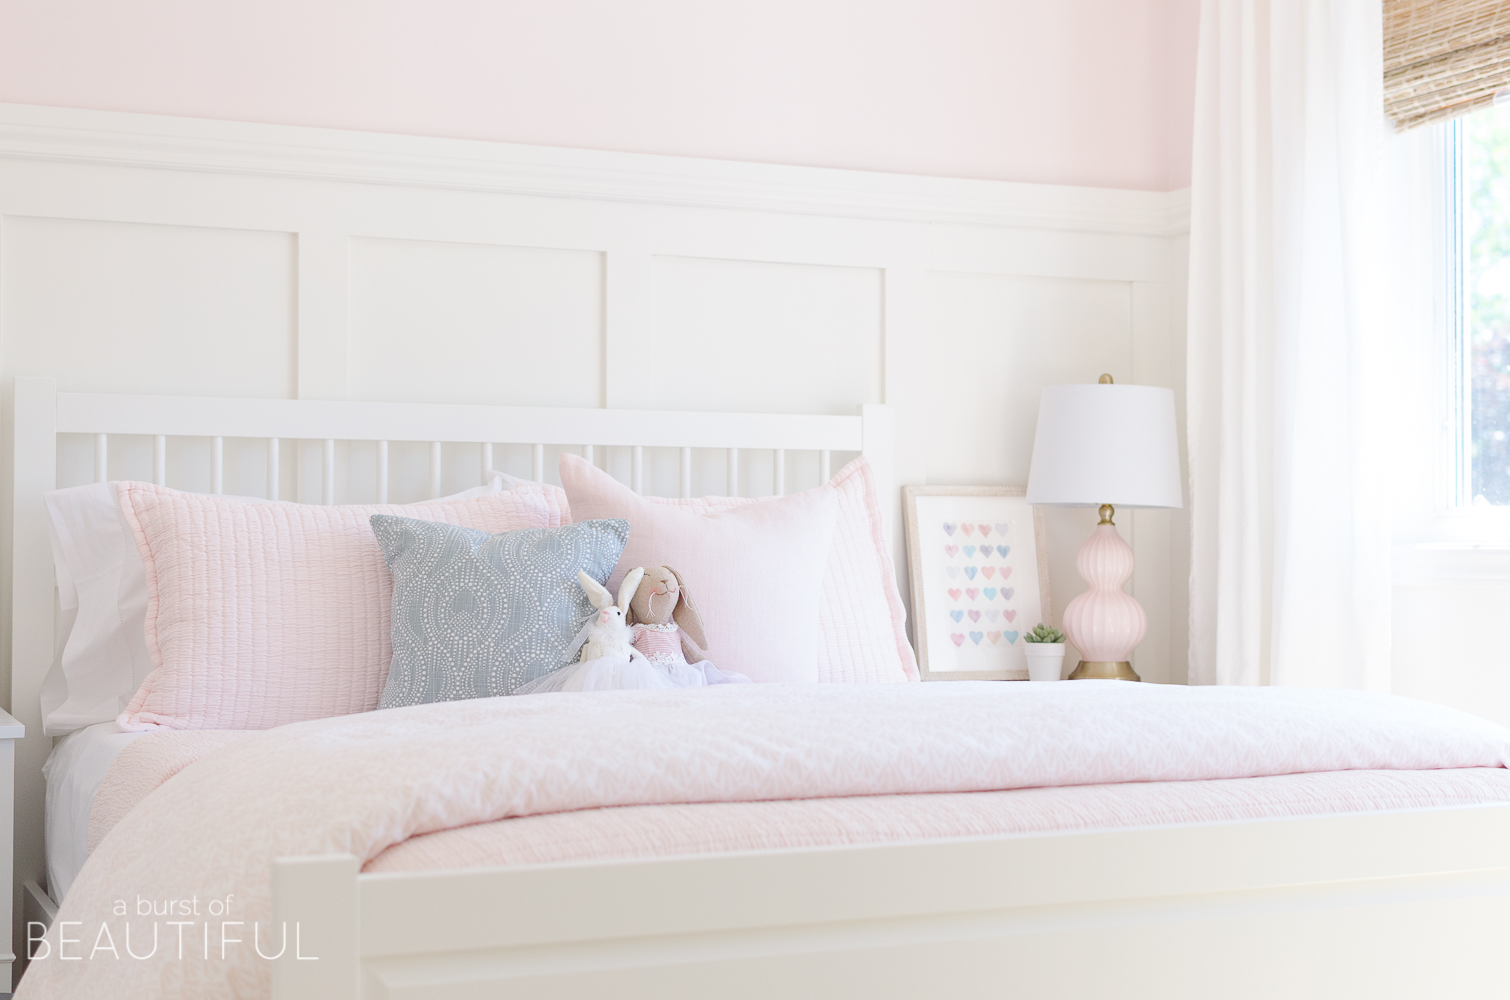 Toddler Girl Pink Bedroom Design & Decor Ideas with artwork, pillows, board and batten, pink comforter